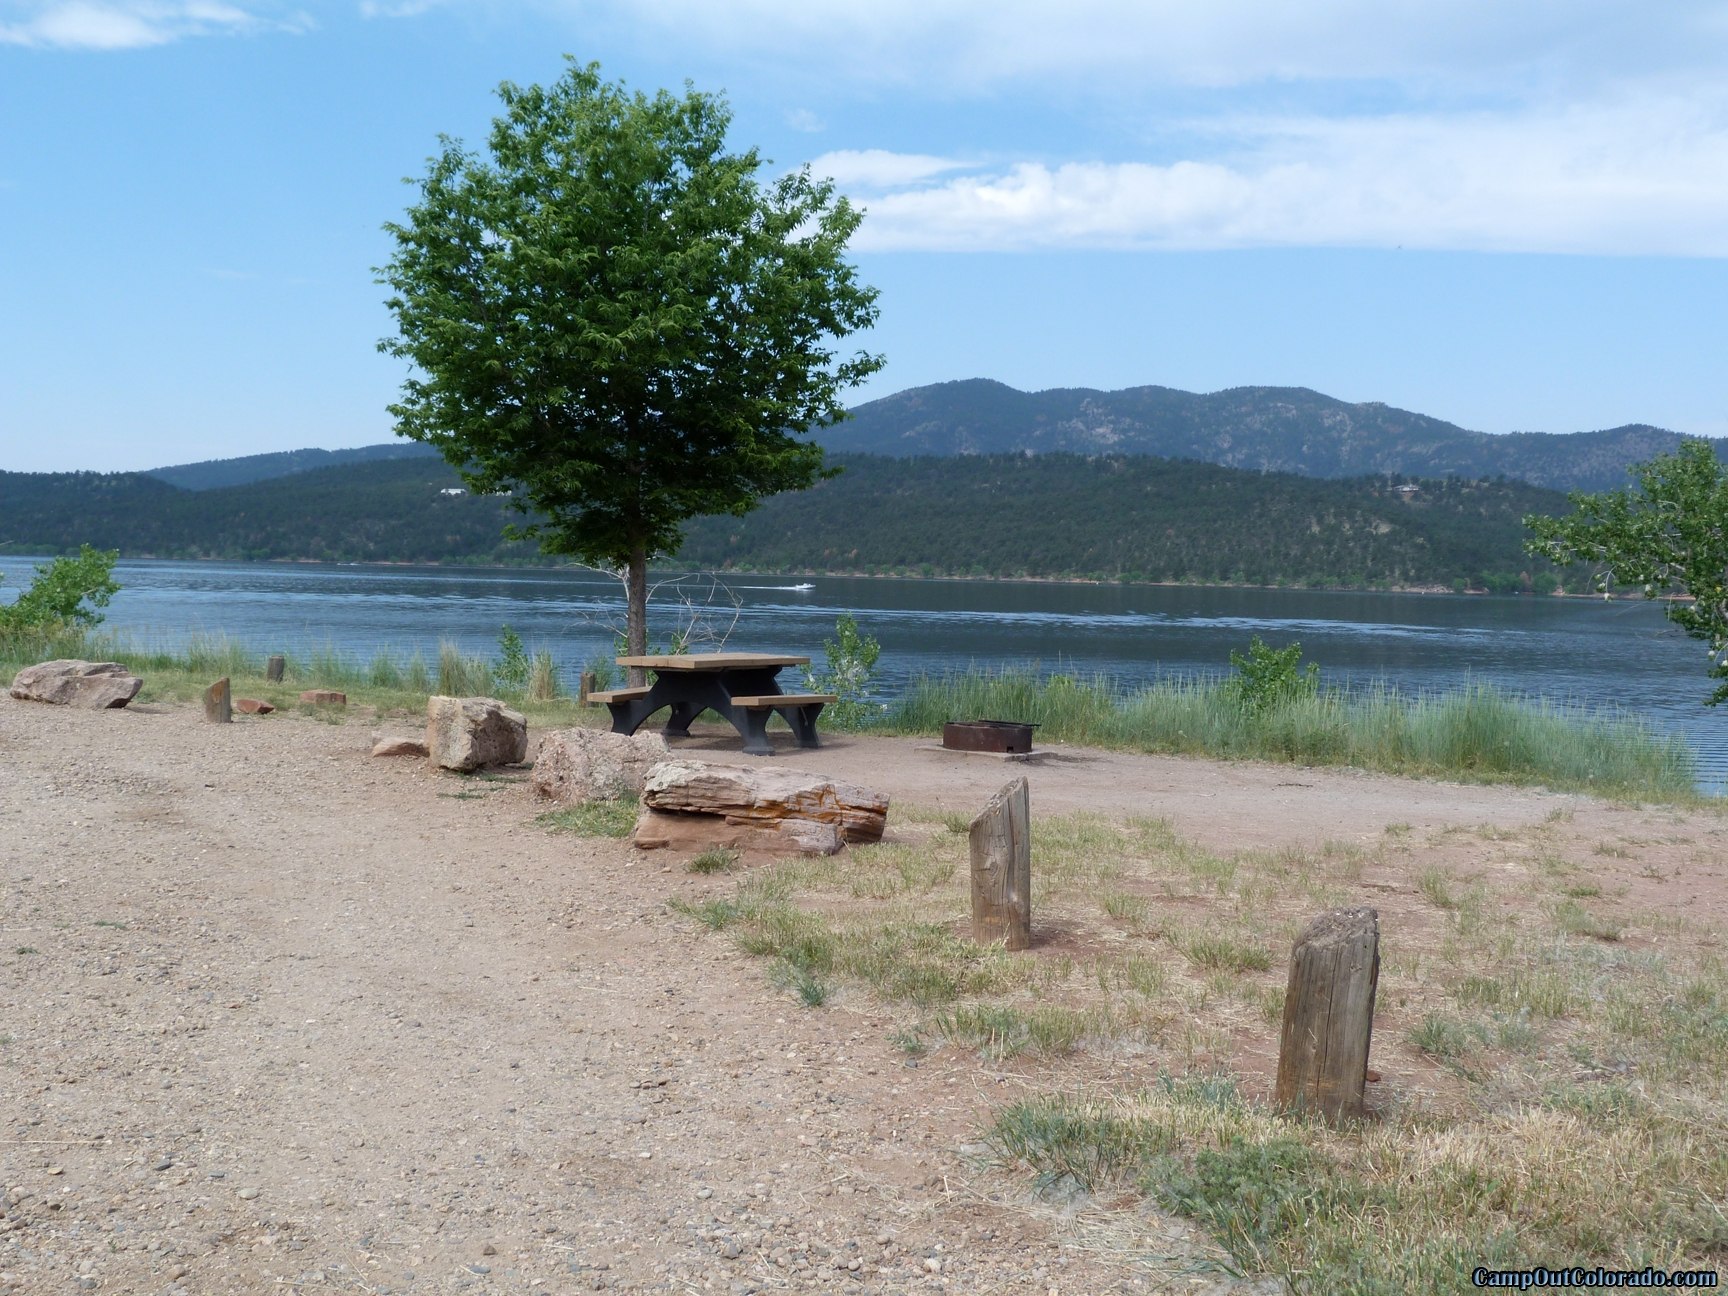 camp-out-colorado-carter-lake-one-tree